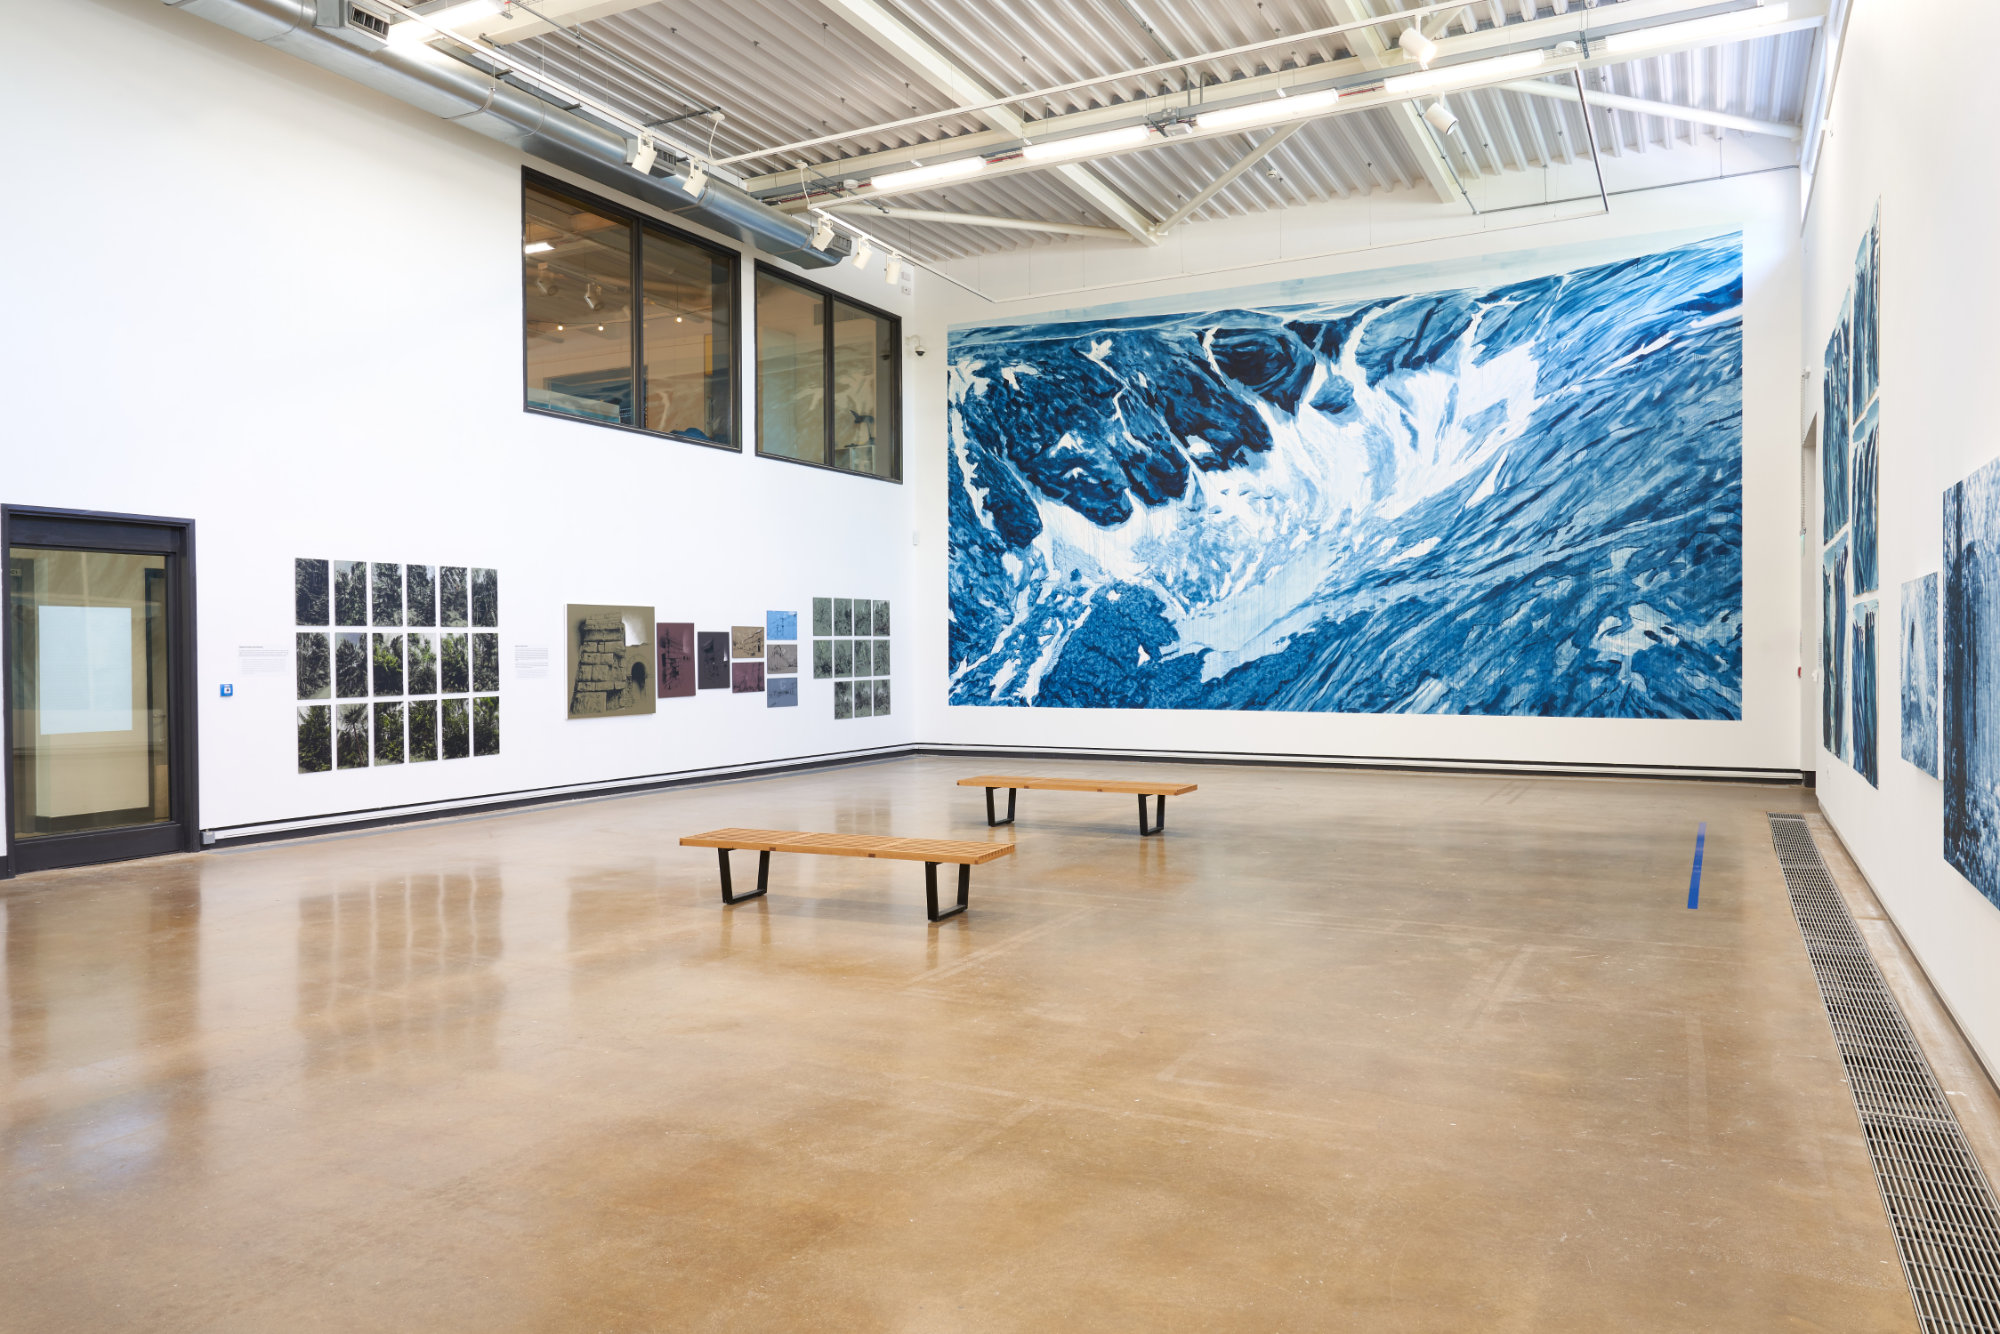 a large gallery with pictures and paintings on the walls